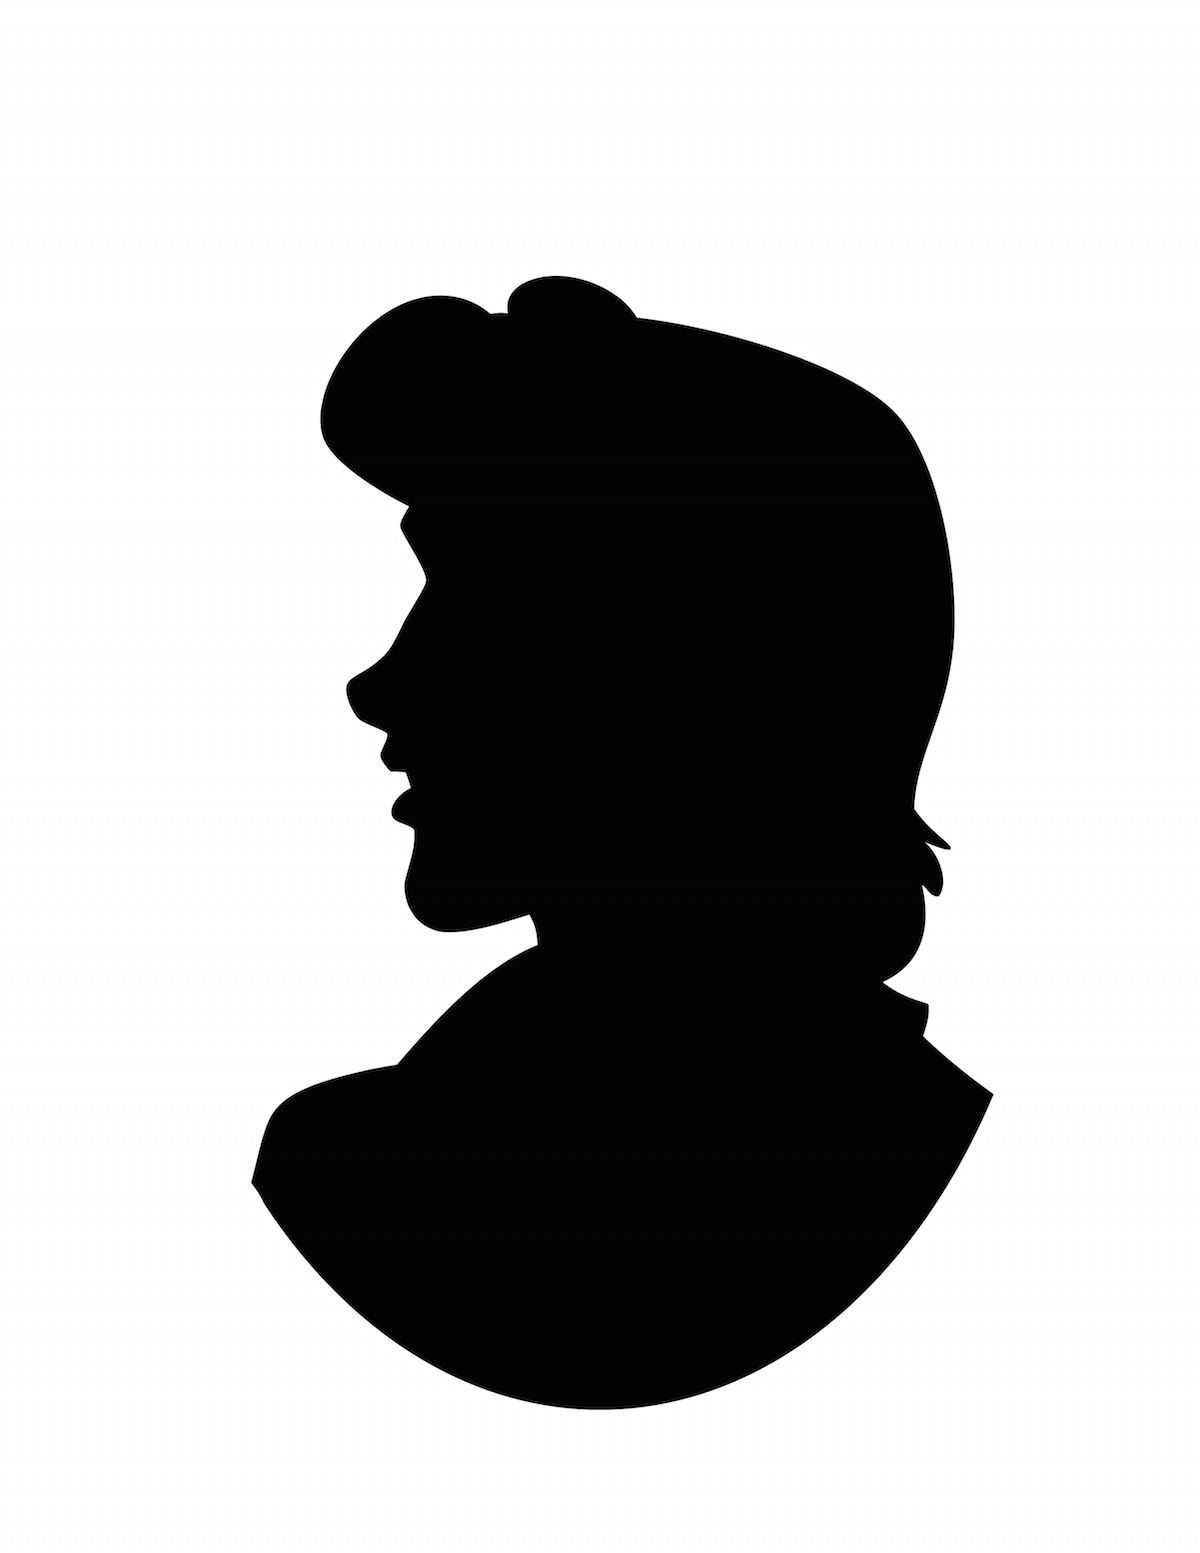 image about Free Printable Disney Silhouettes called Silhouette Disney at  Totally free for person employ